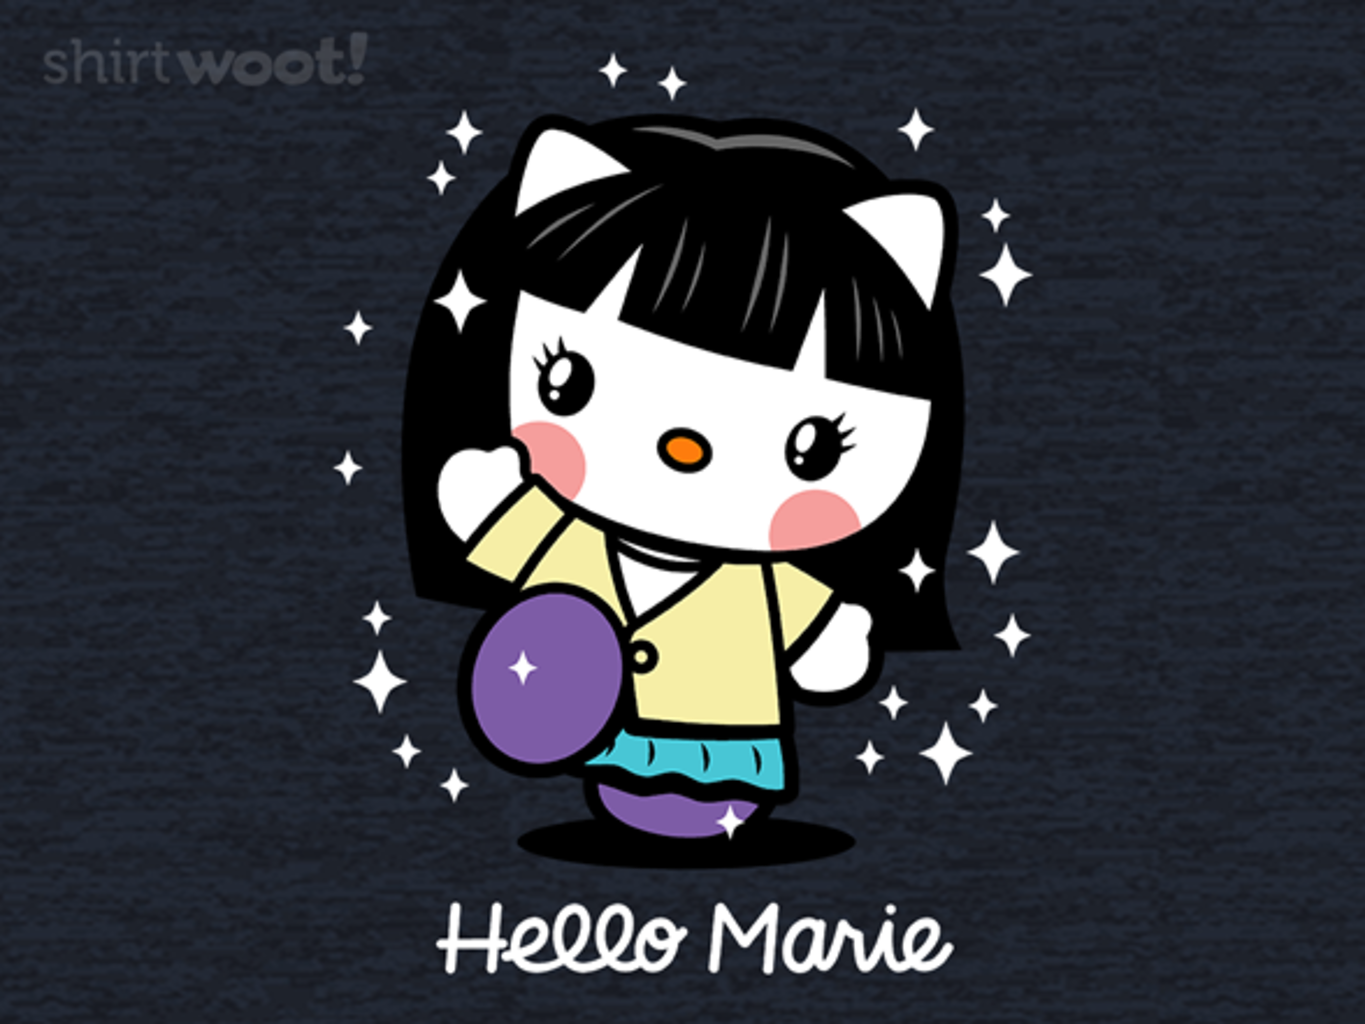 Woot!: Hello Marie